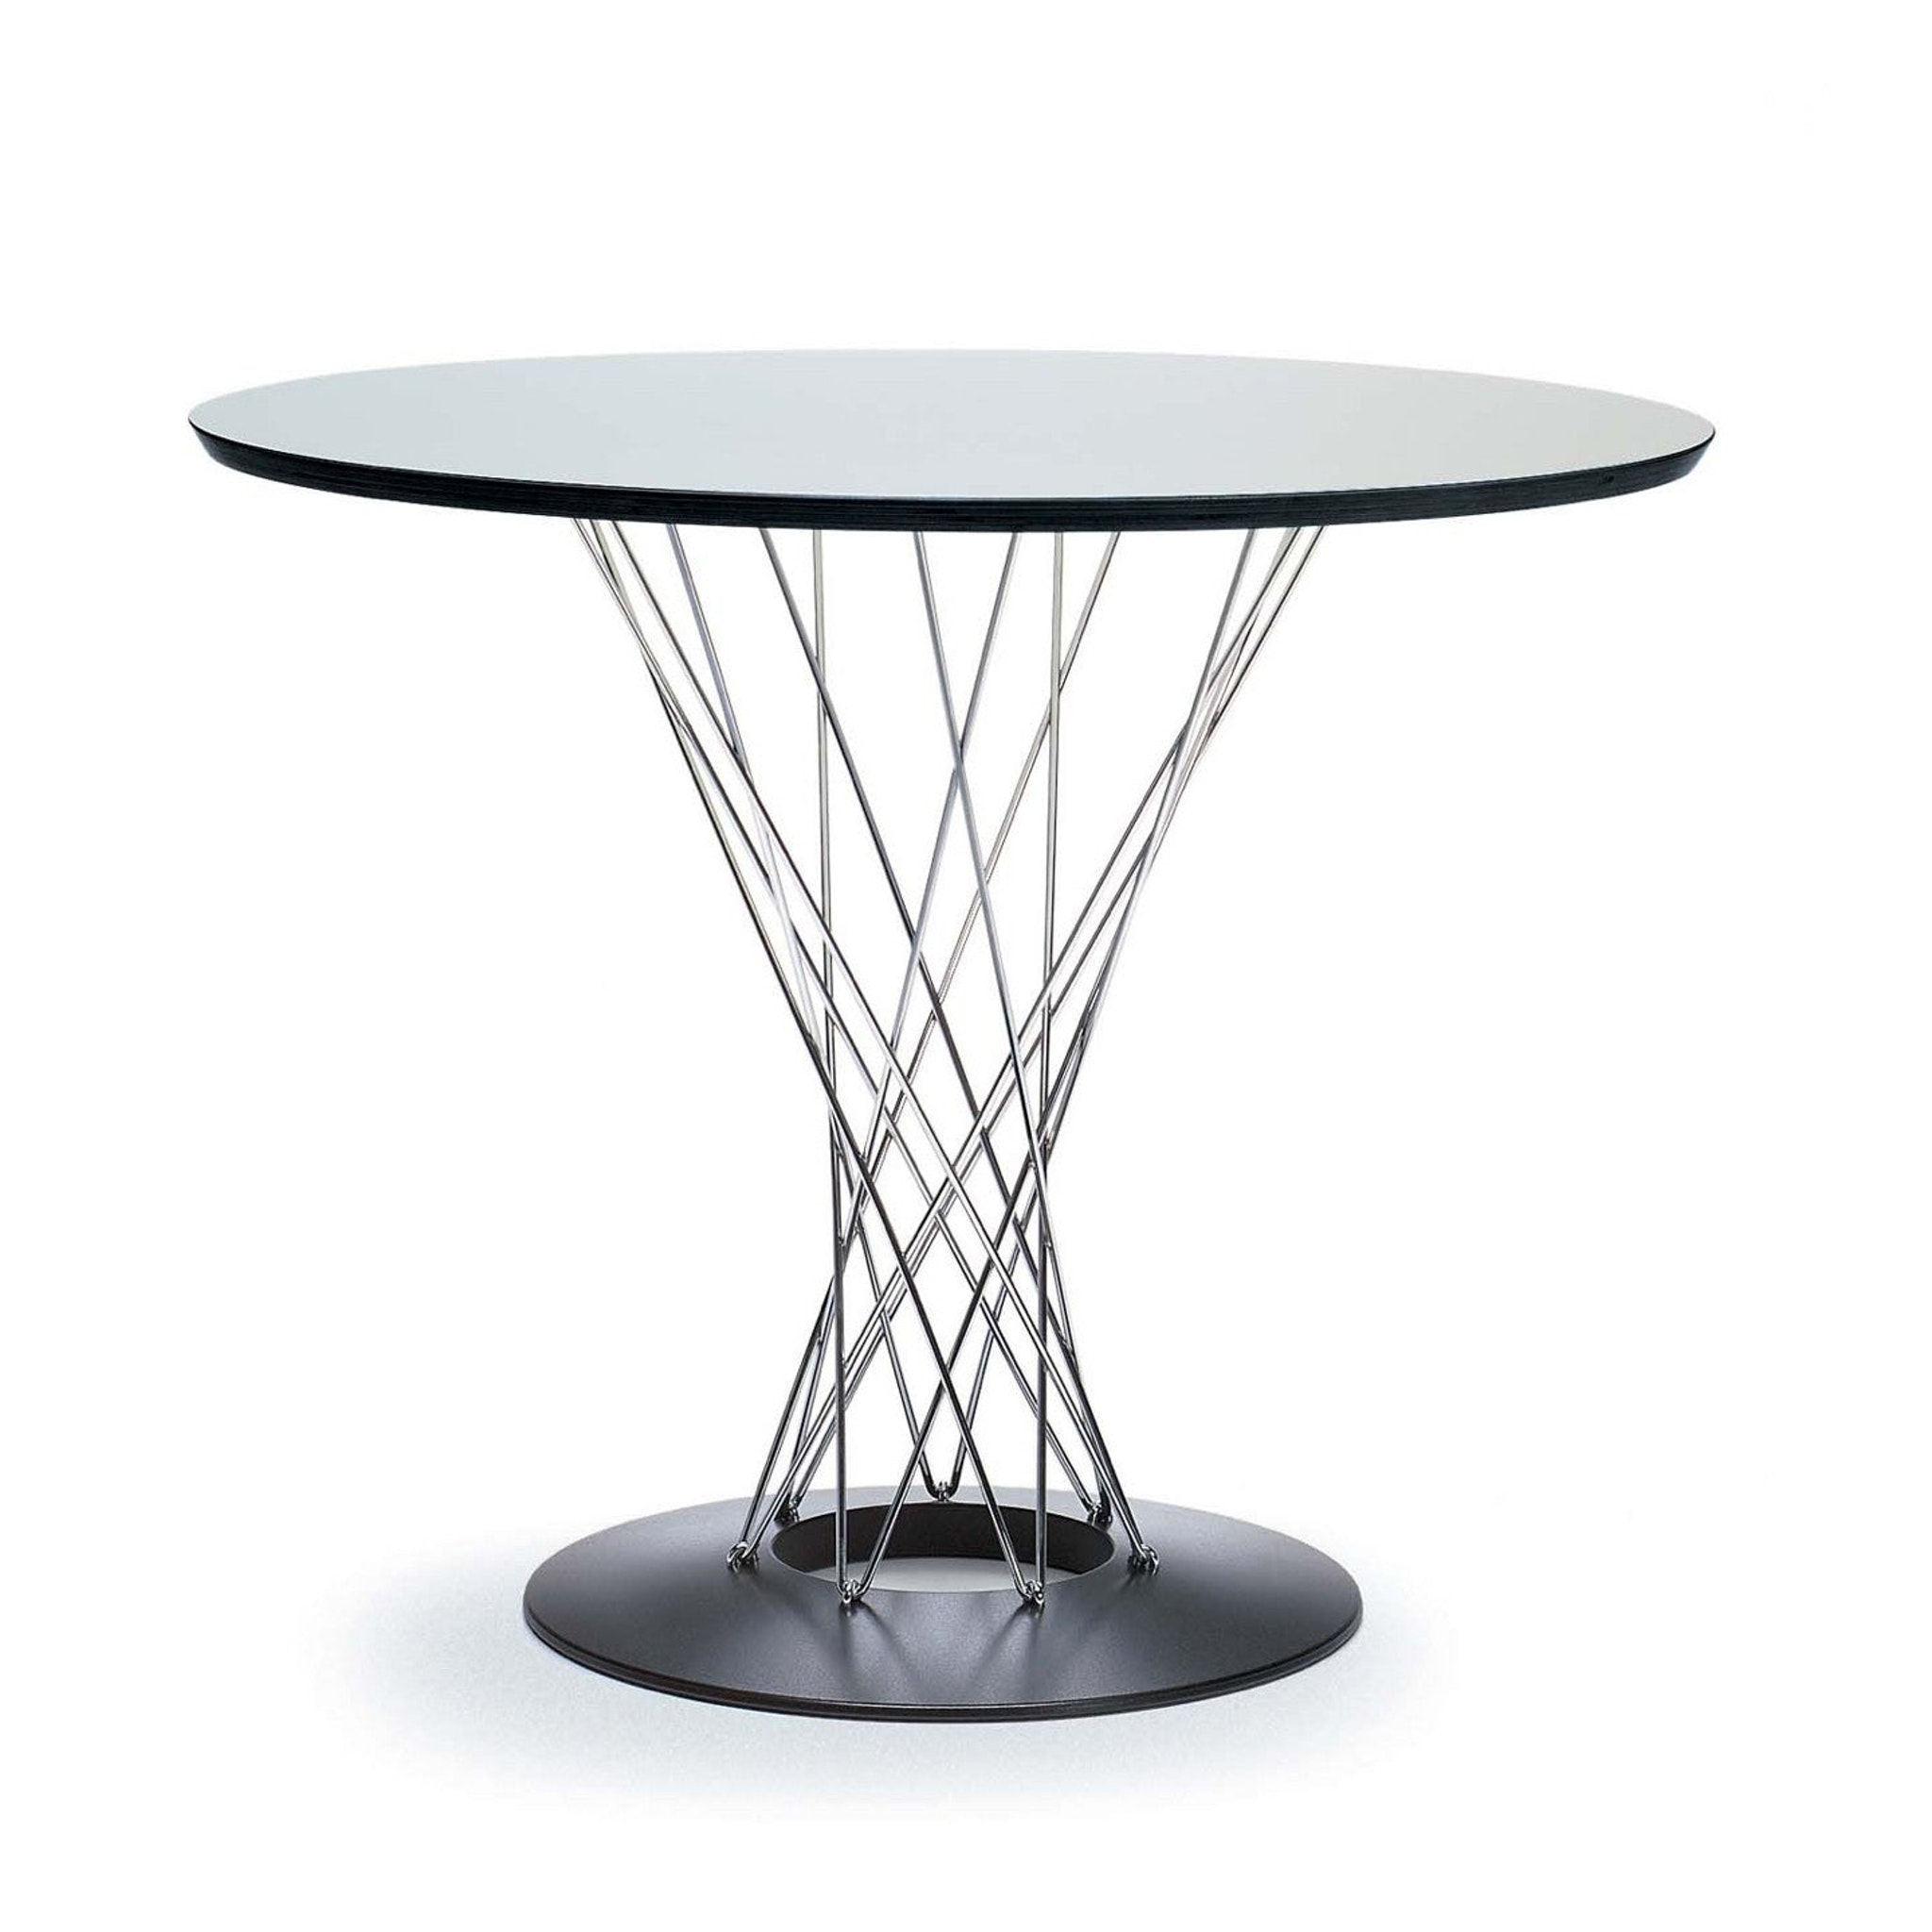 Noguchi Dining Table by Vitra